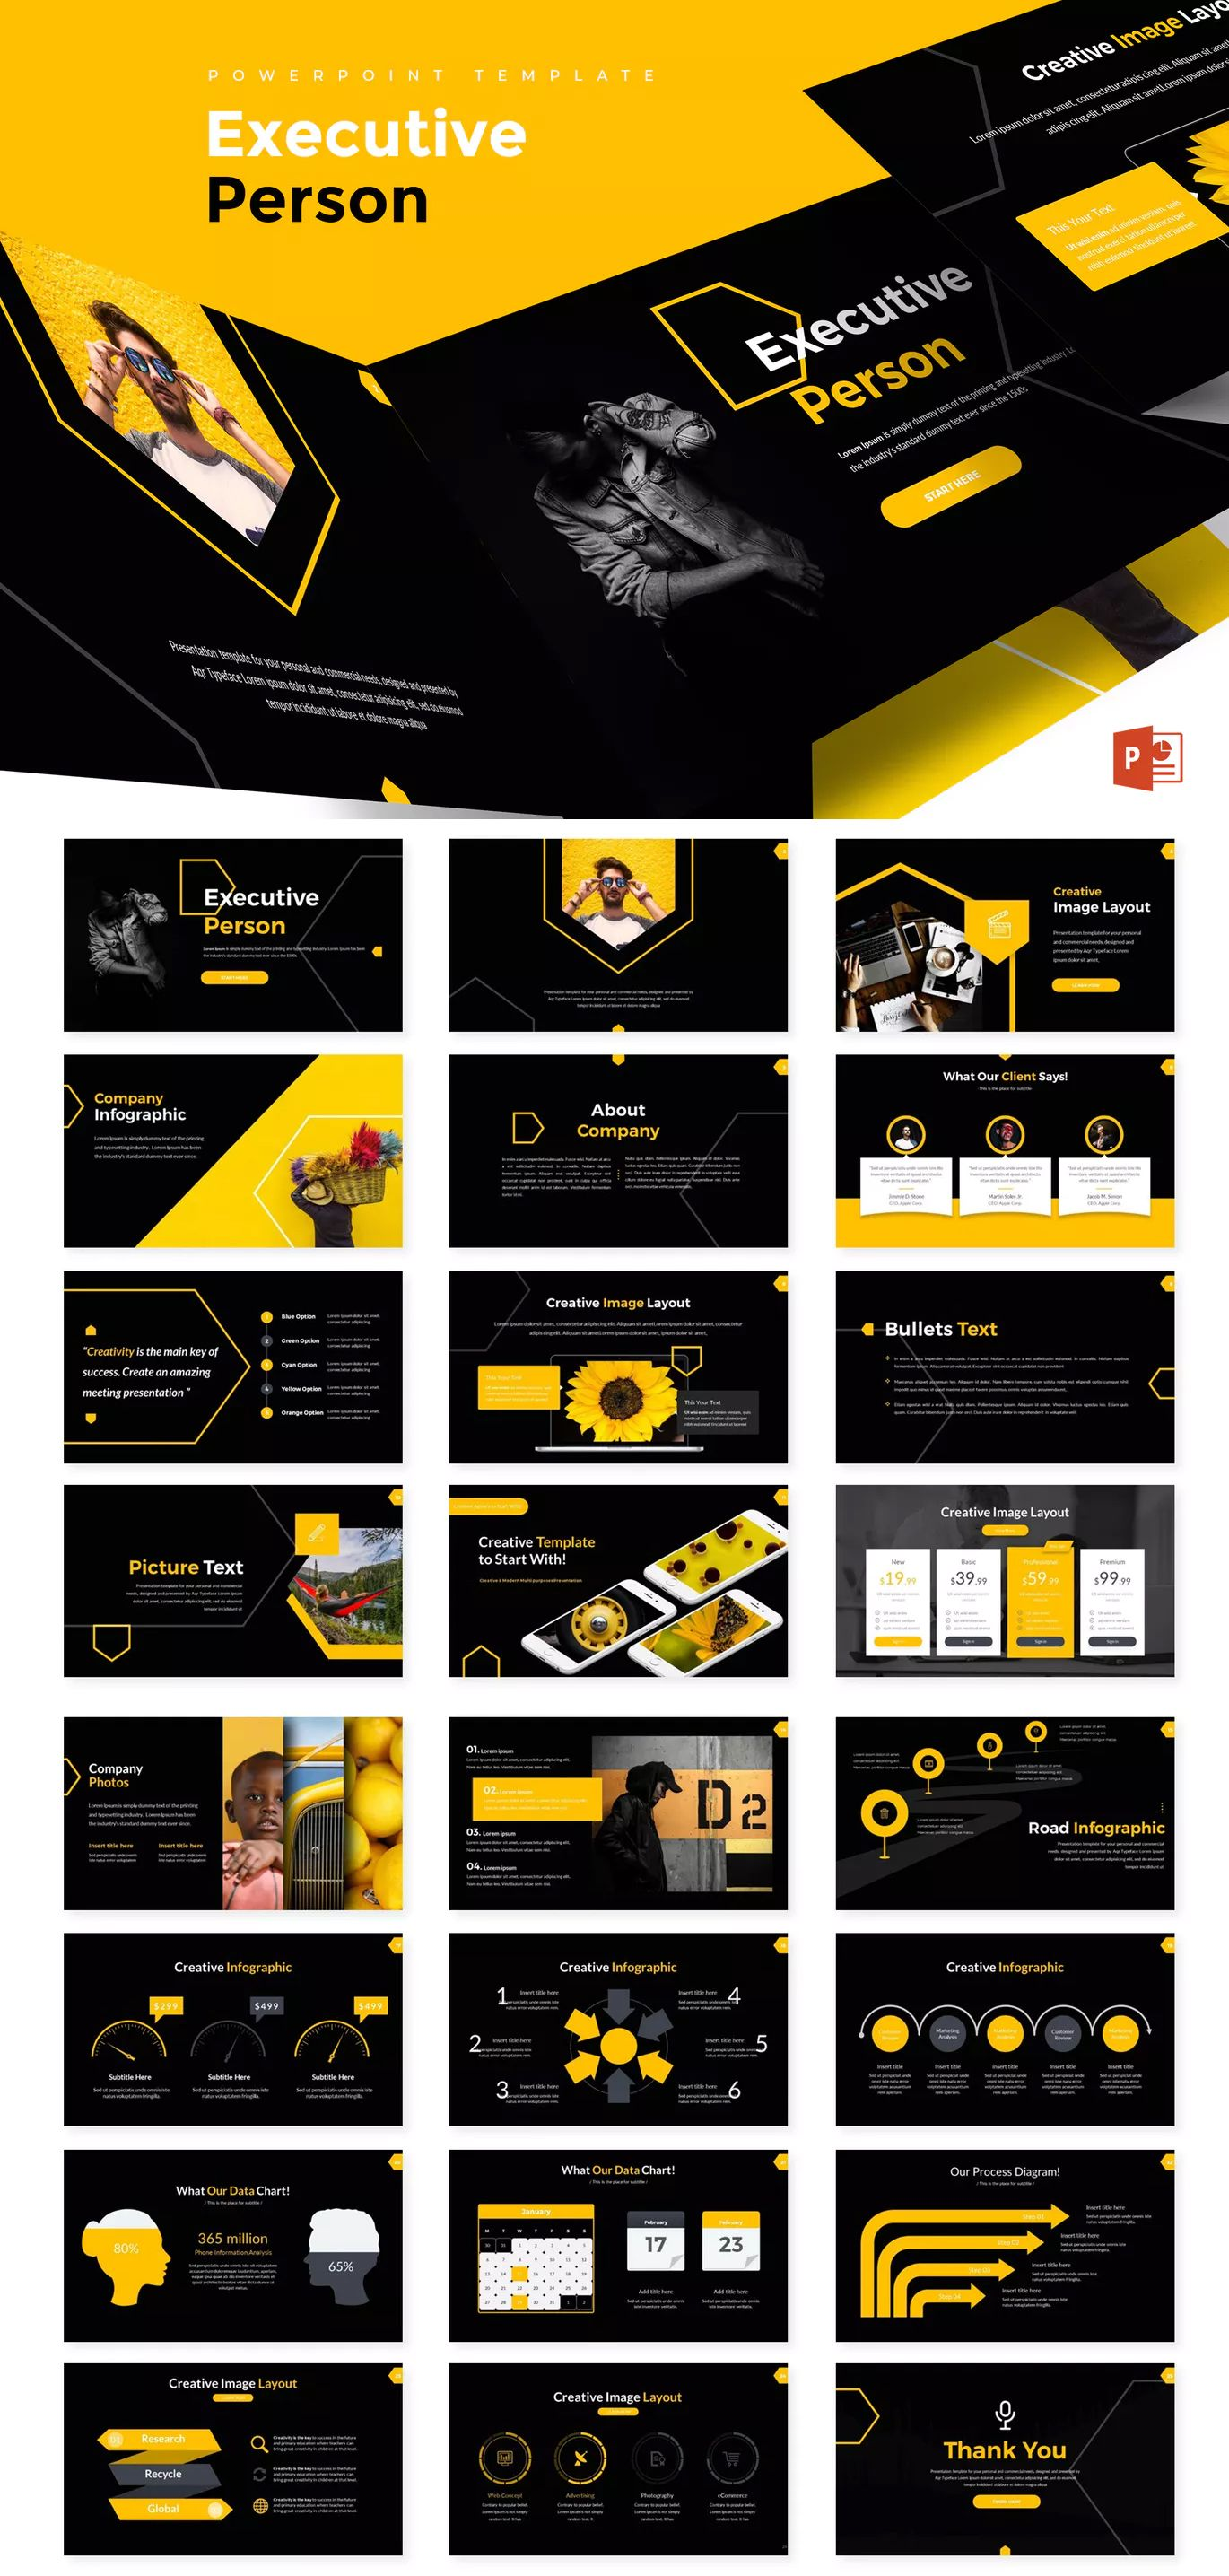 executive person powerpoint presentation template powerpoint